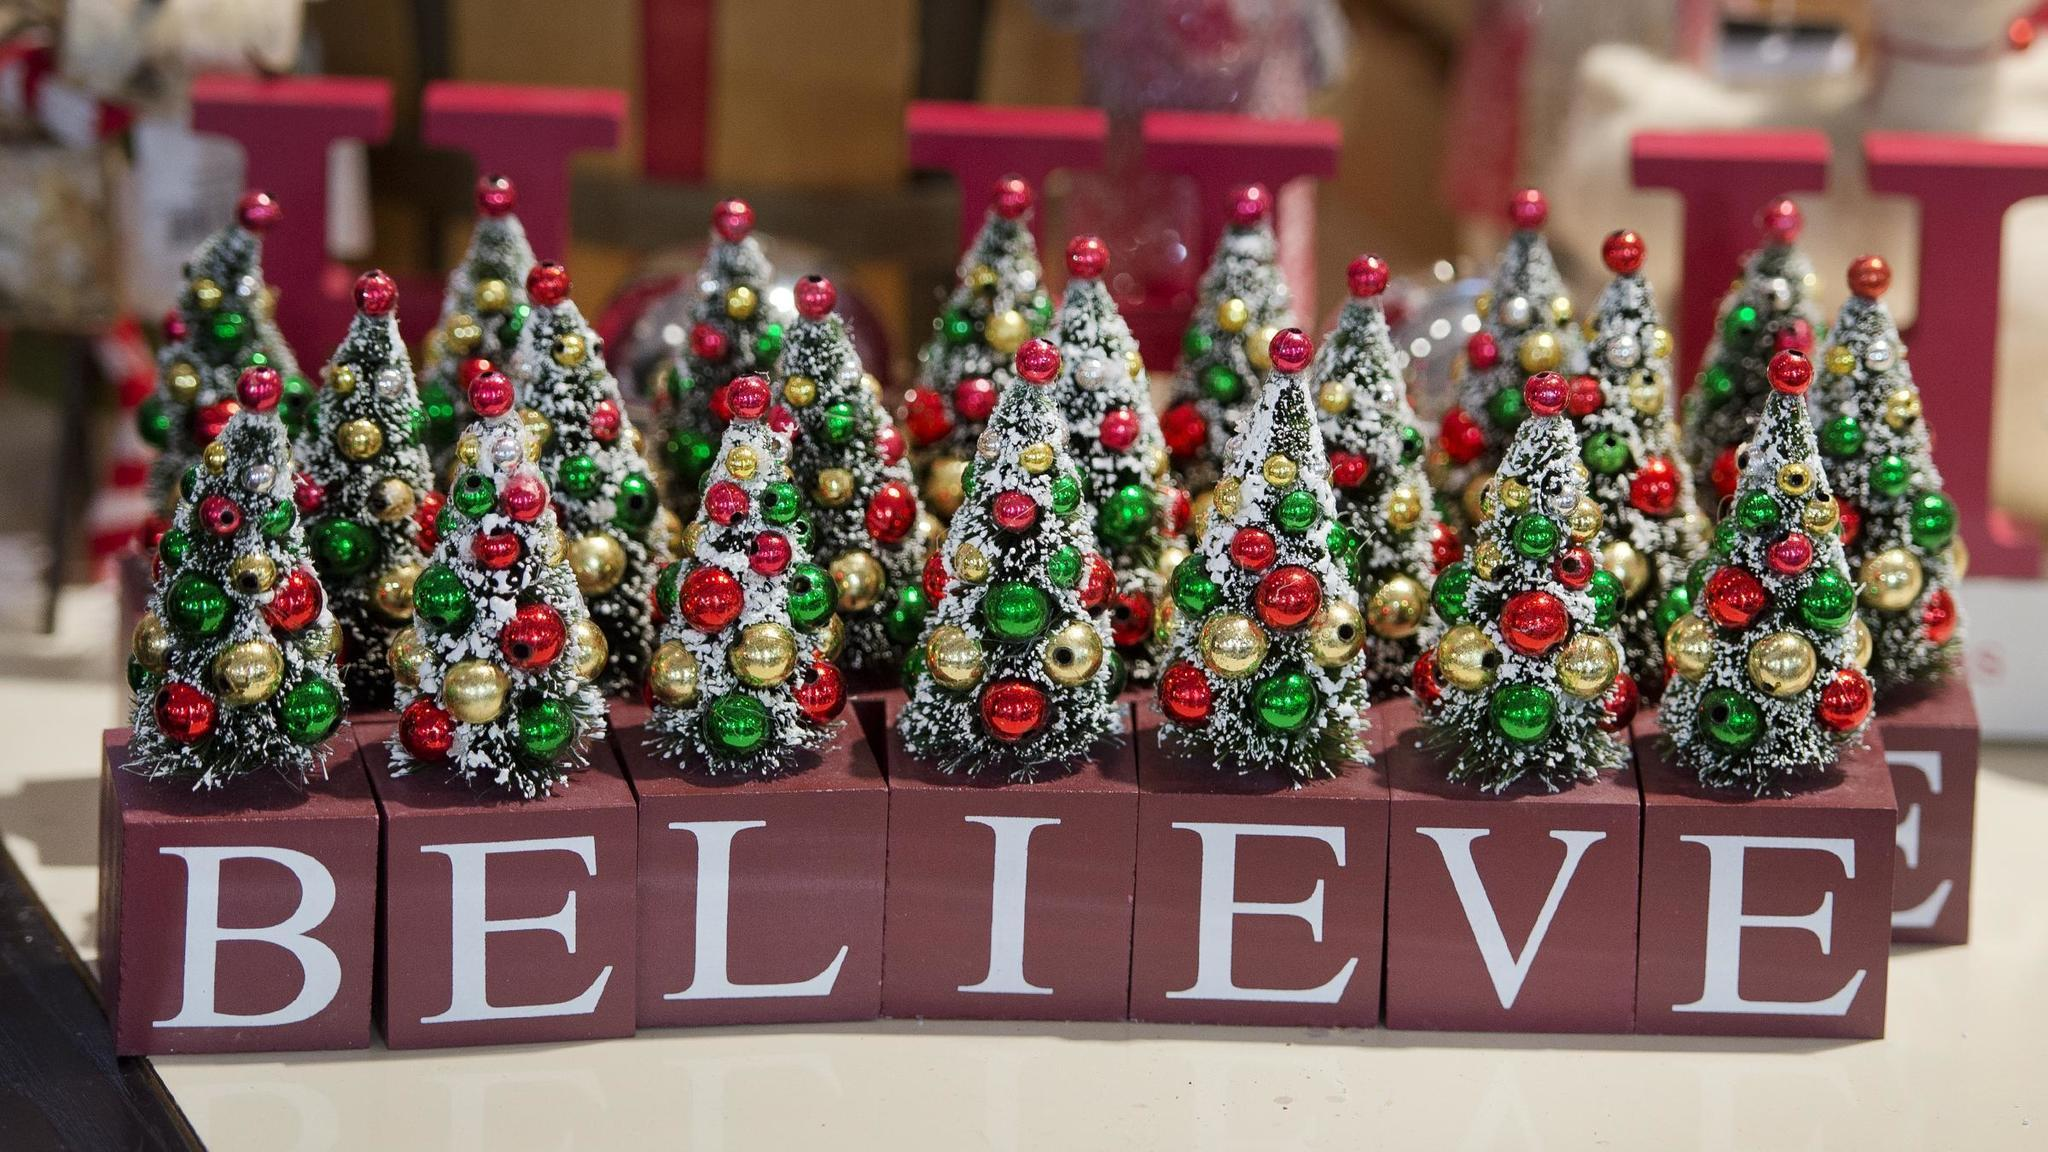 Your guide: Lehigh Valley holiday craft shows - The Morning Call on heber valley, san joaquin valley, flathead valley, hudson valley, map of cagayan valley, roaring fork valley, lamar valley, delaware valley, plaza san diego fashion valley, chicago valley, colorado valley, preston valley, lebanon valley, mission valley, forest valley,